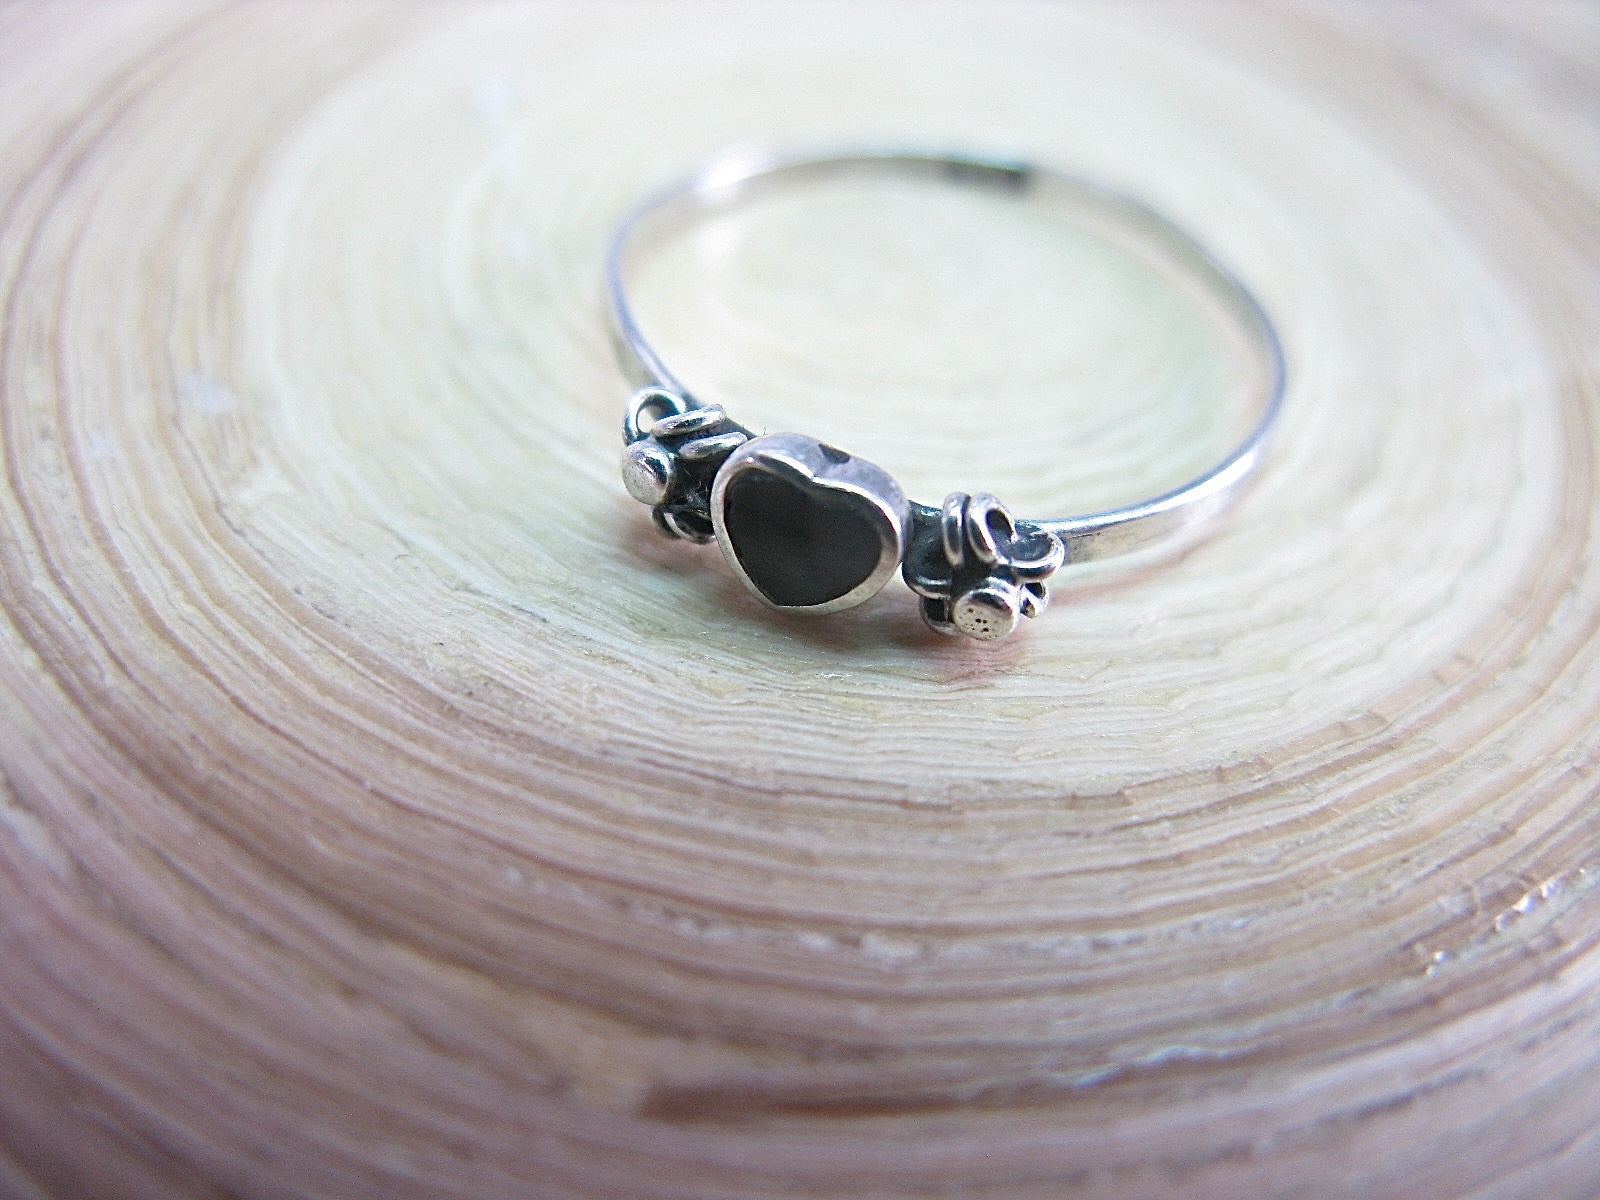 Onyx Heart Ring Minimalist Jewelry in 925 Sterling Silver Ring Faith Owl - Faith Owl